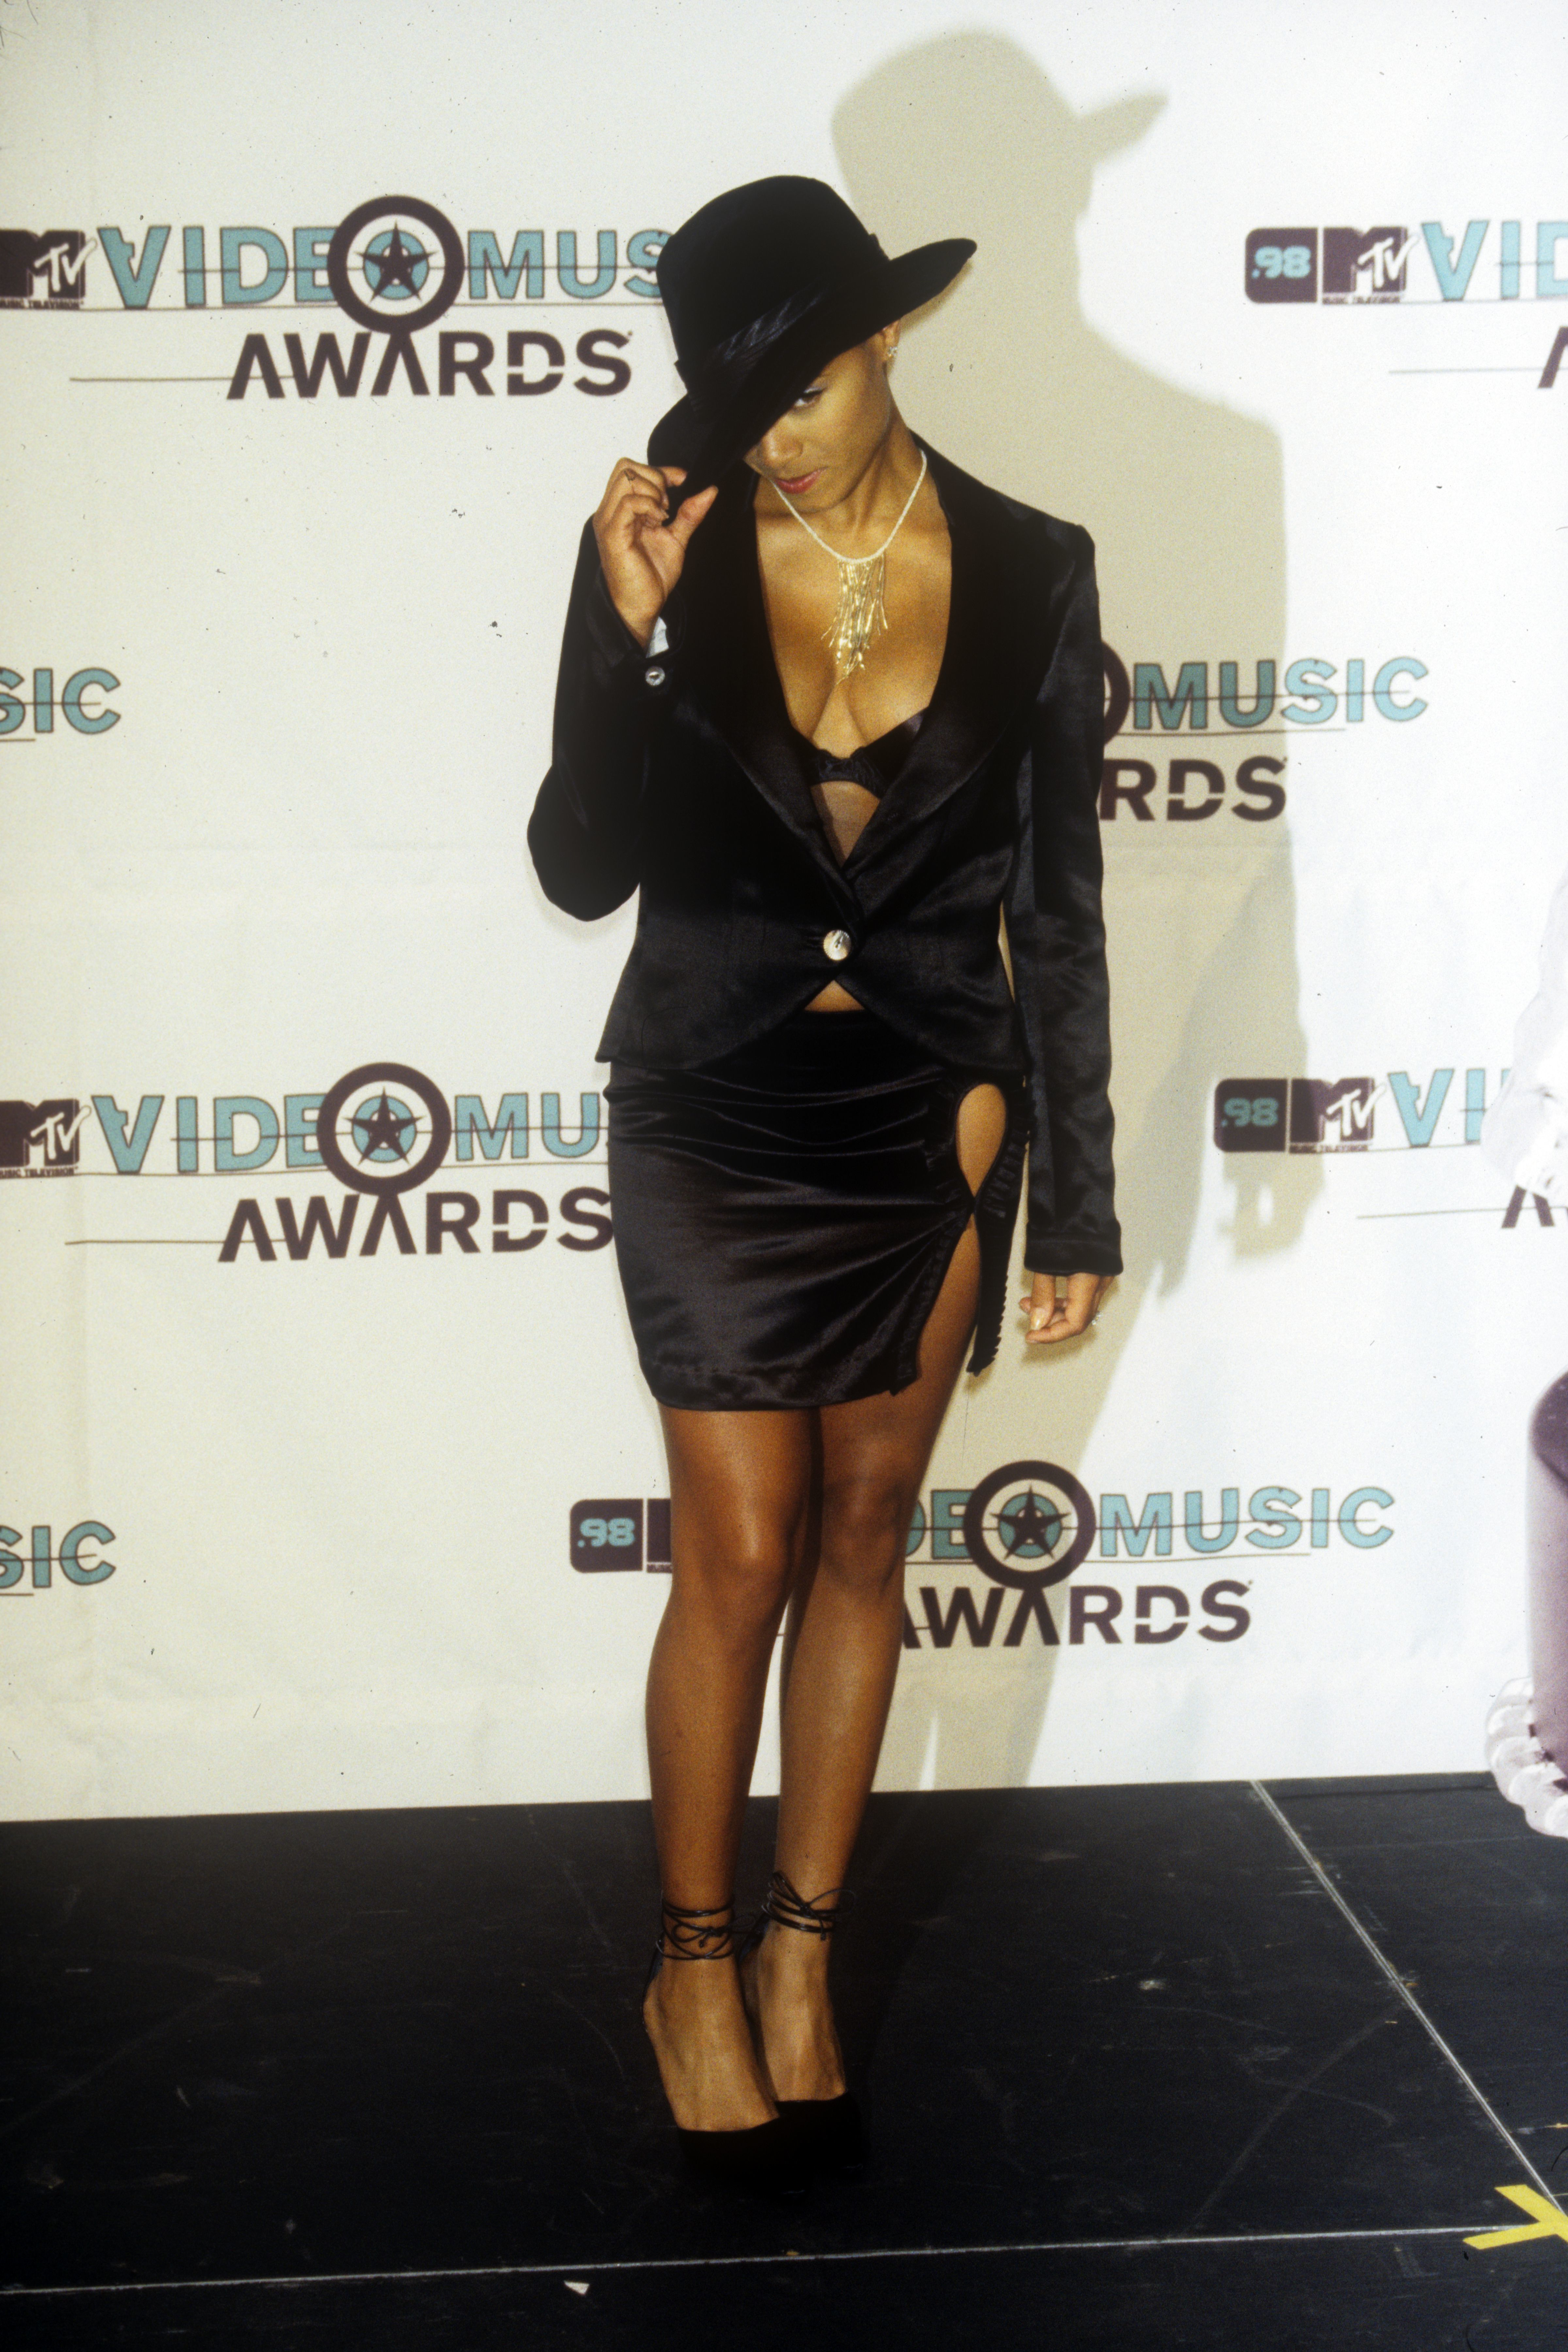 Jada Pinkett Smith attends the MTV Video Music Awards at the Gibson Amphitheatre in Los Angeles on Sept. 10, 1998.